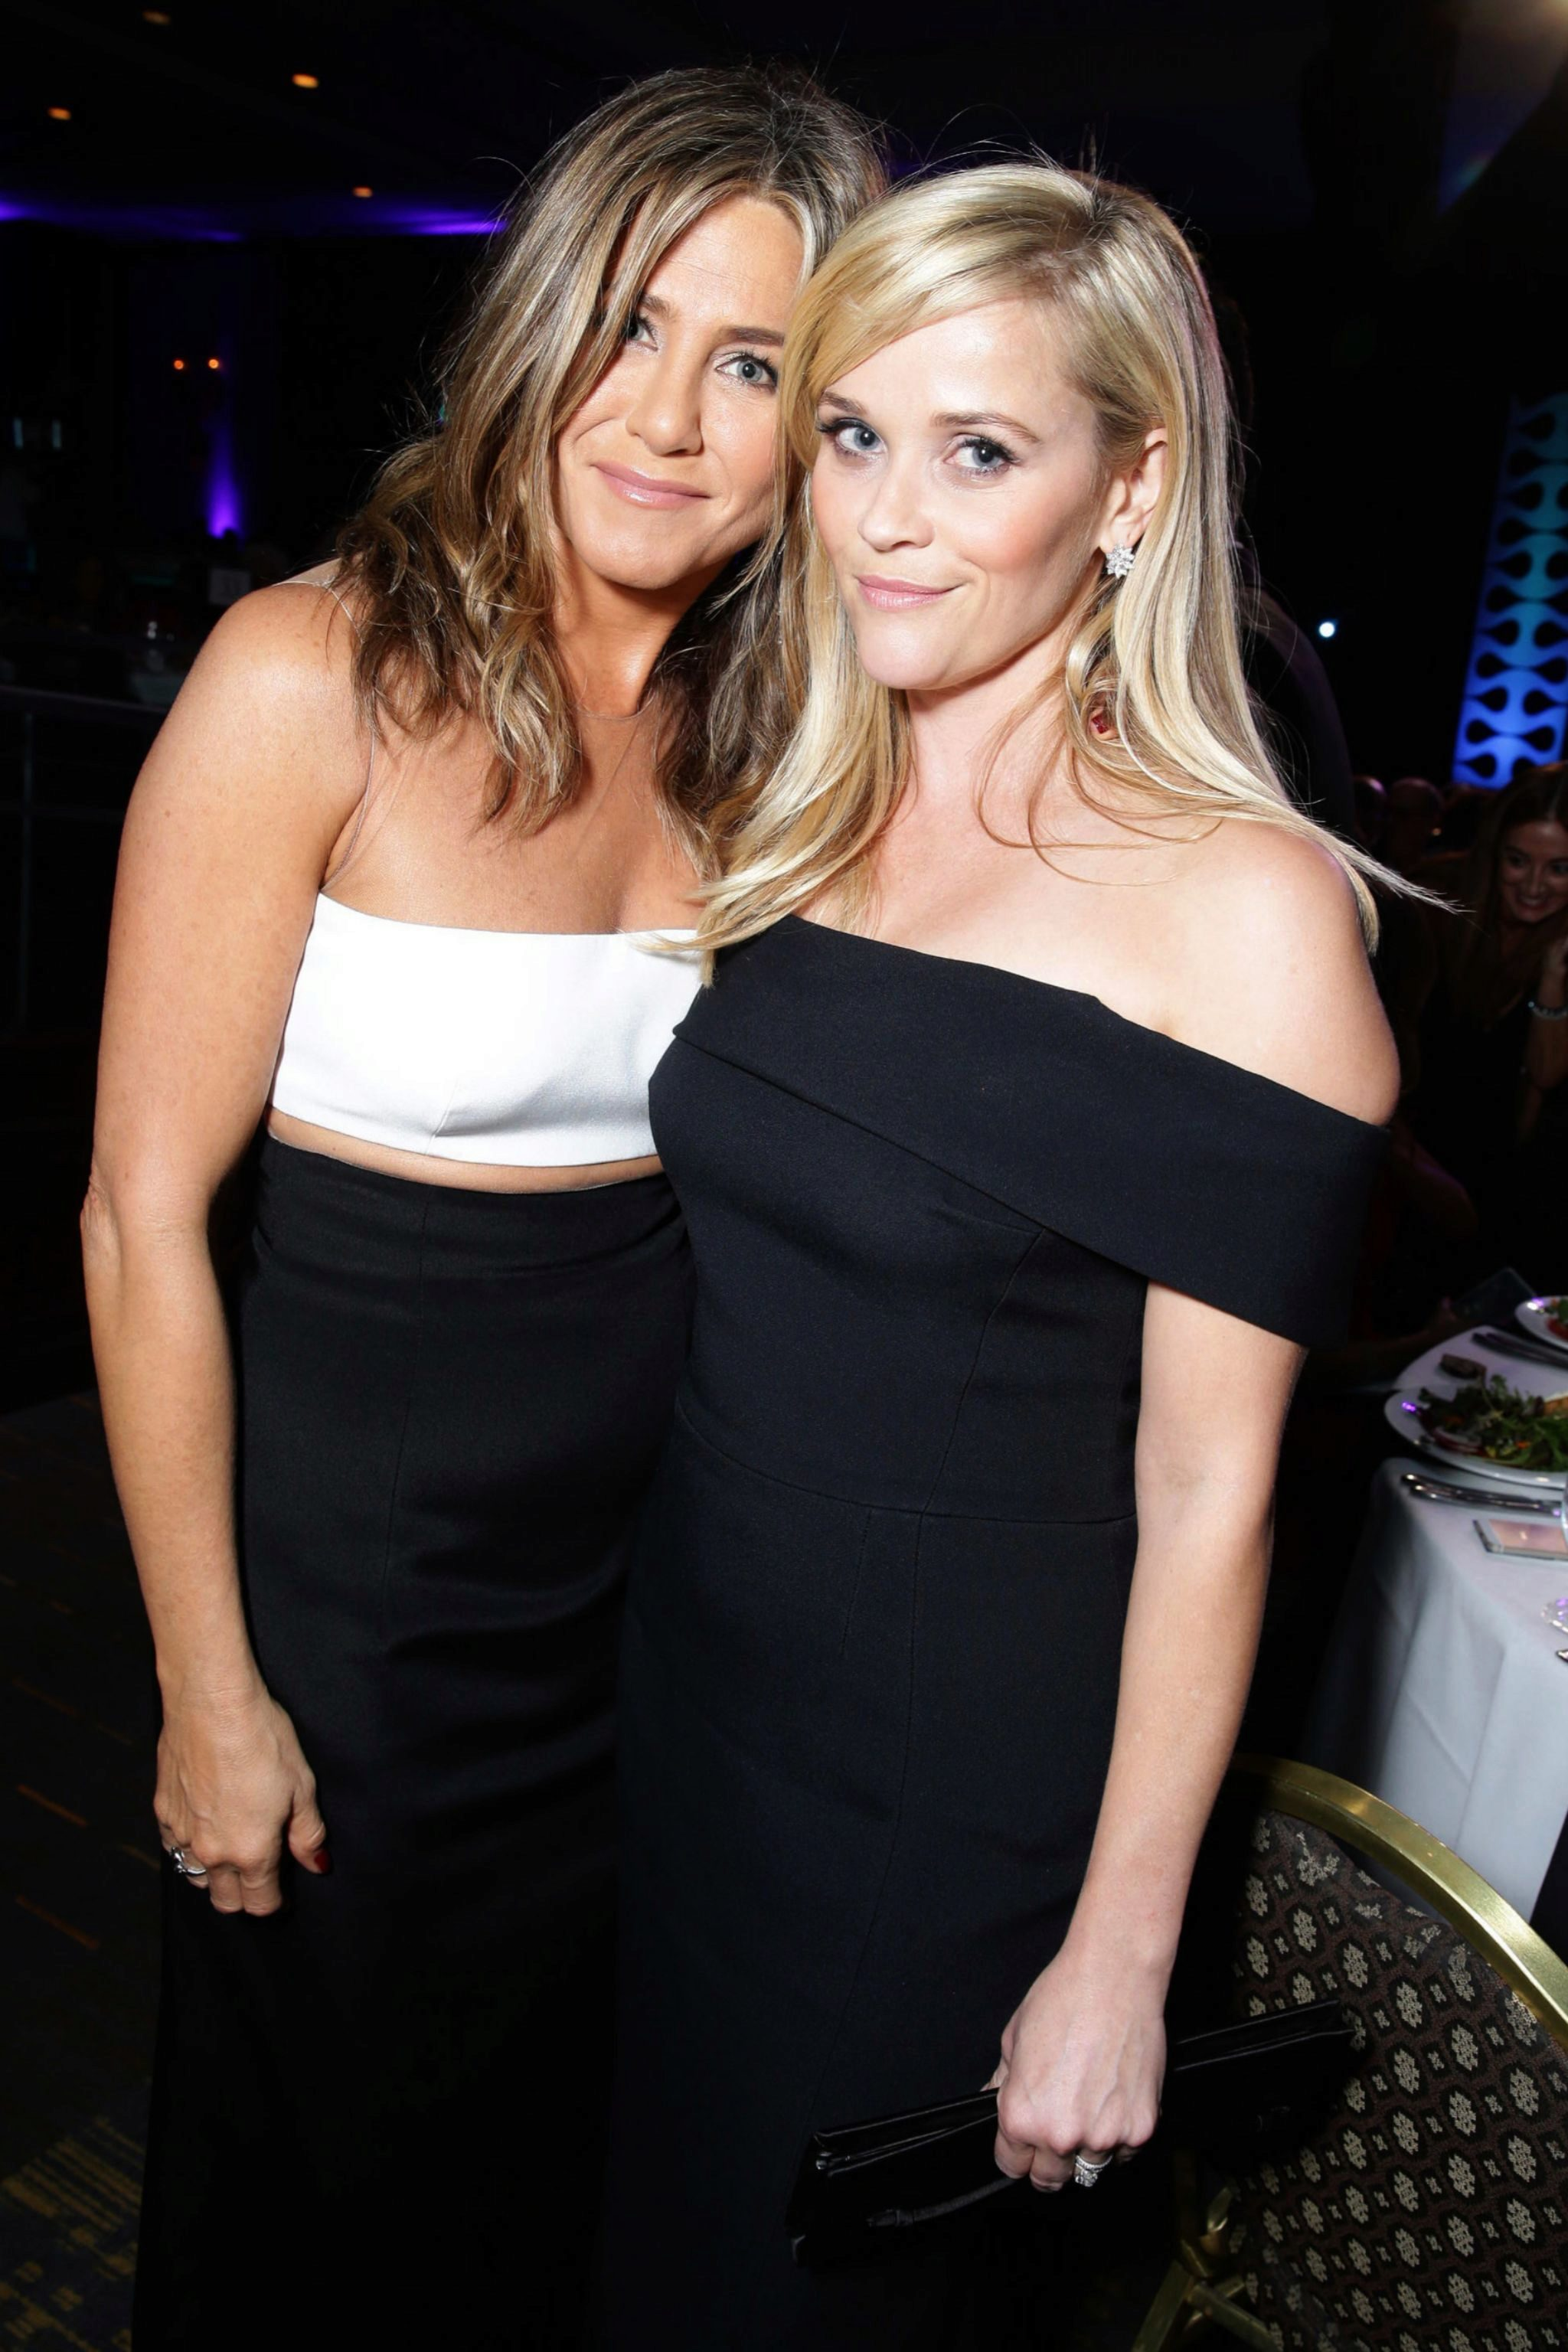 Las actrices, Jennifer Aniston y Reese Witherspoon, en los Premios AMC